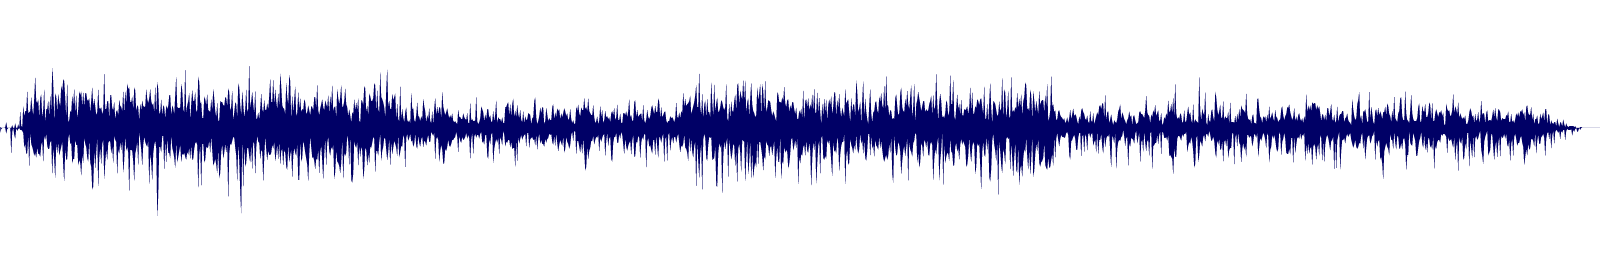 waveform of track #113298